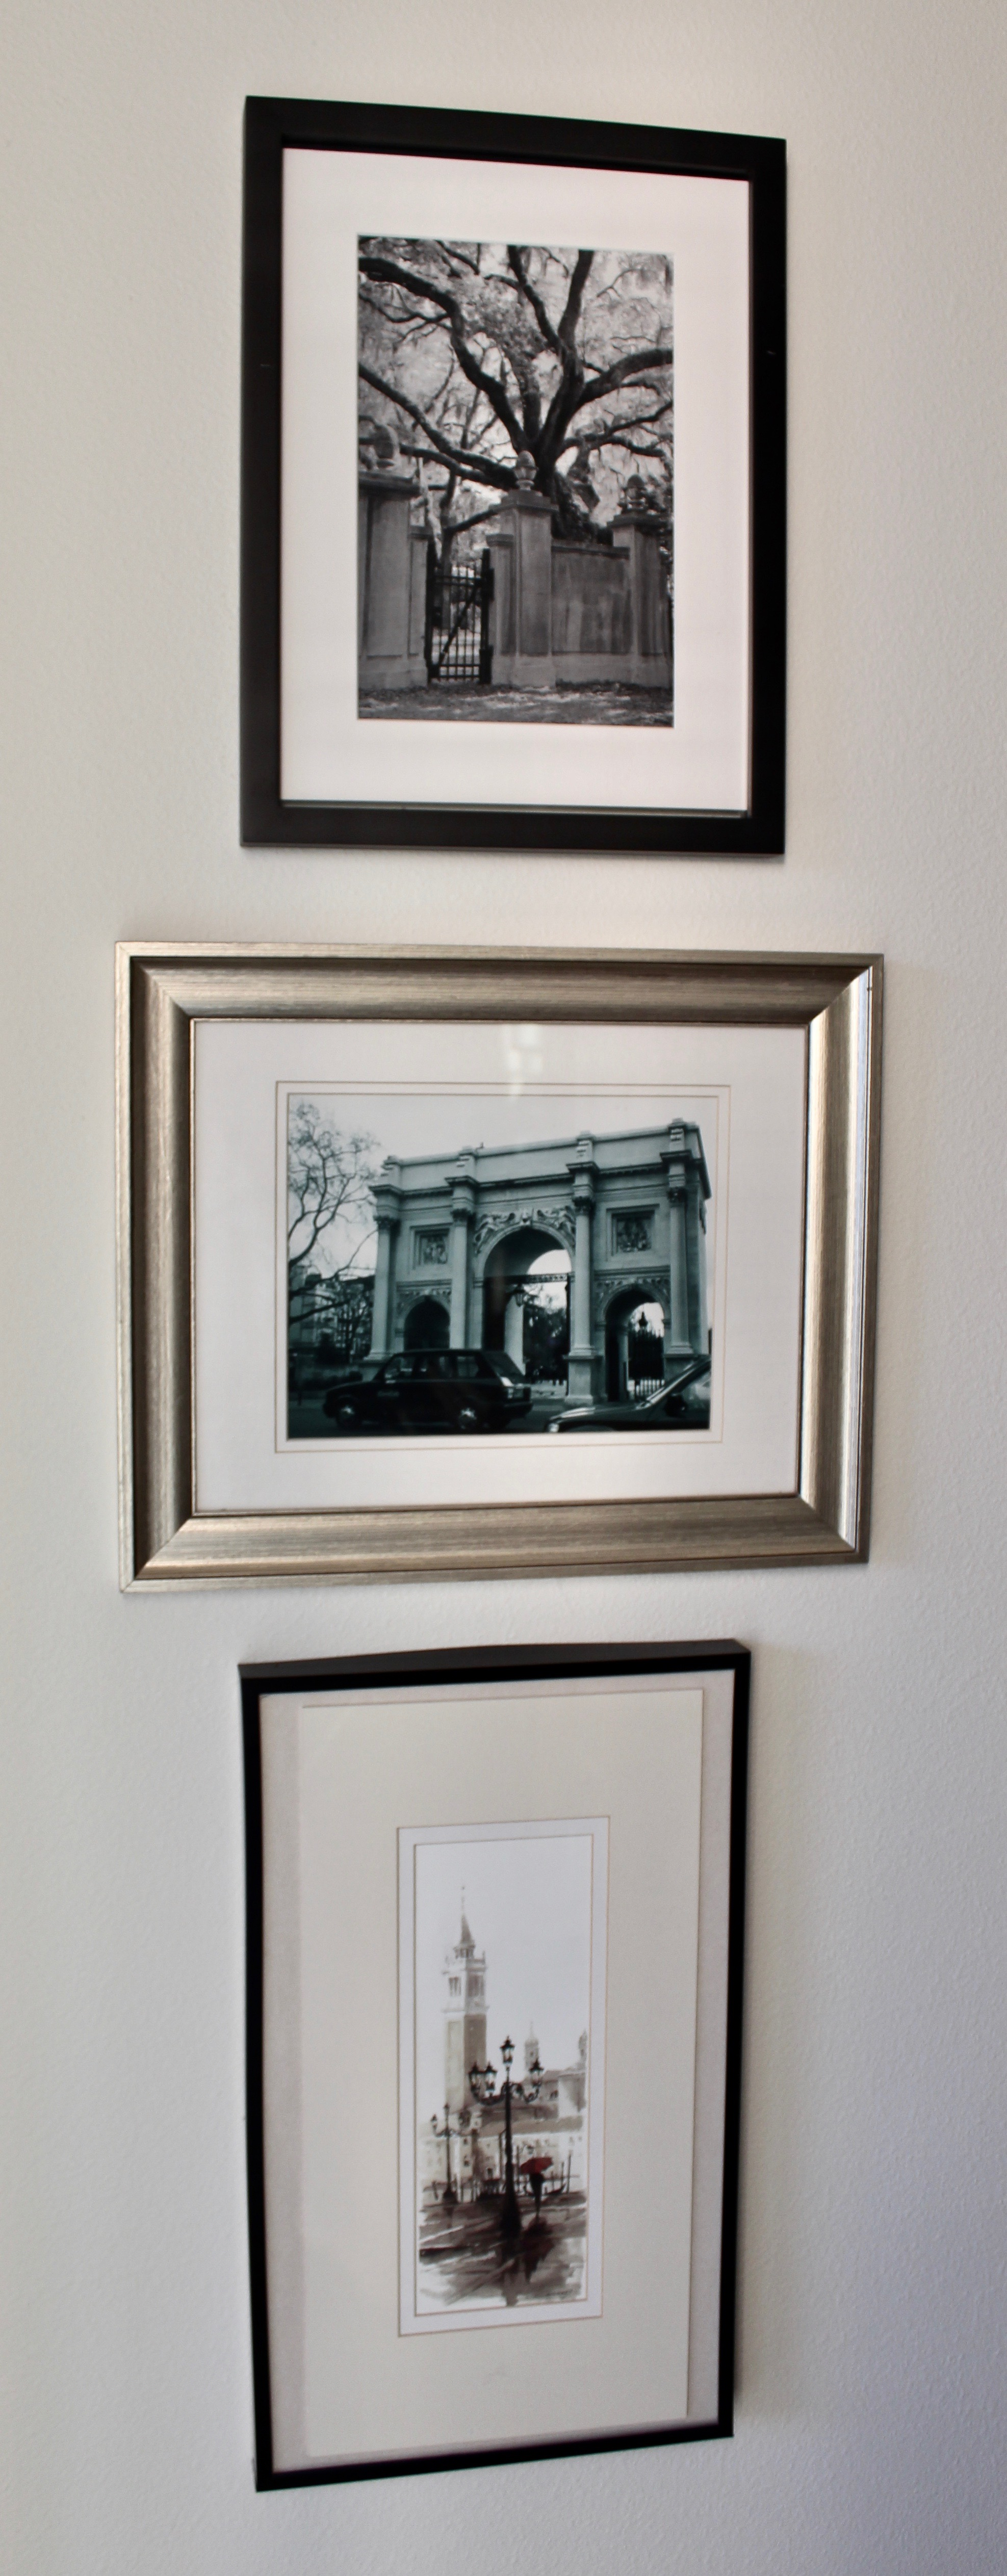 Frames Can Be Different Sizes And Finishes. Content Can Be Of Mixed Media,  Photos Or Paintings, As In The Gallery Group Above.